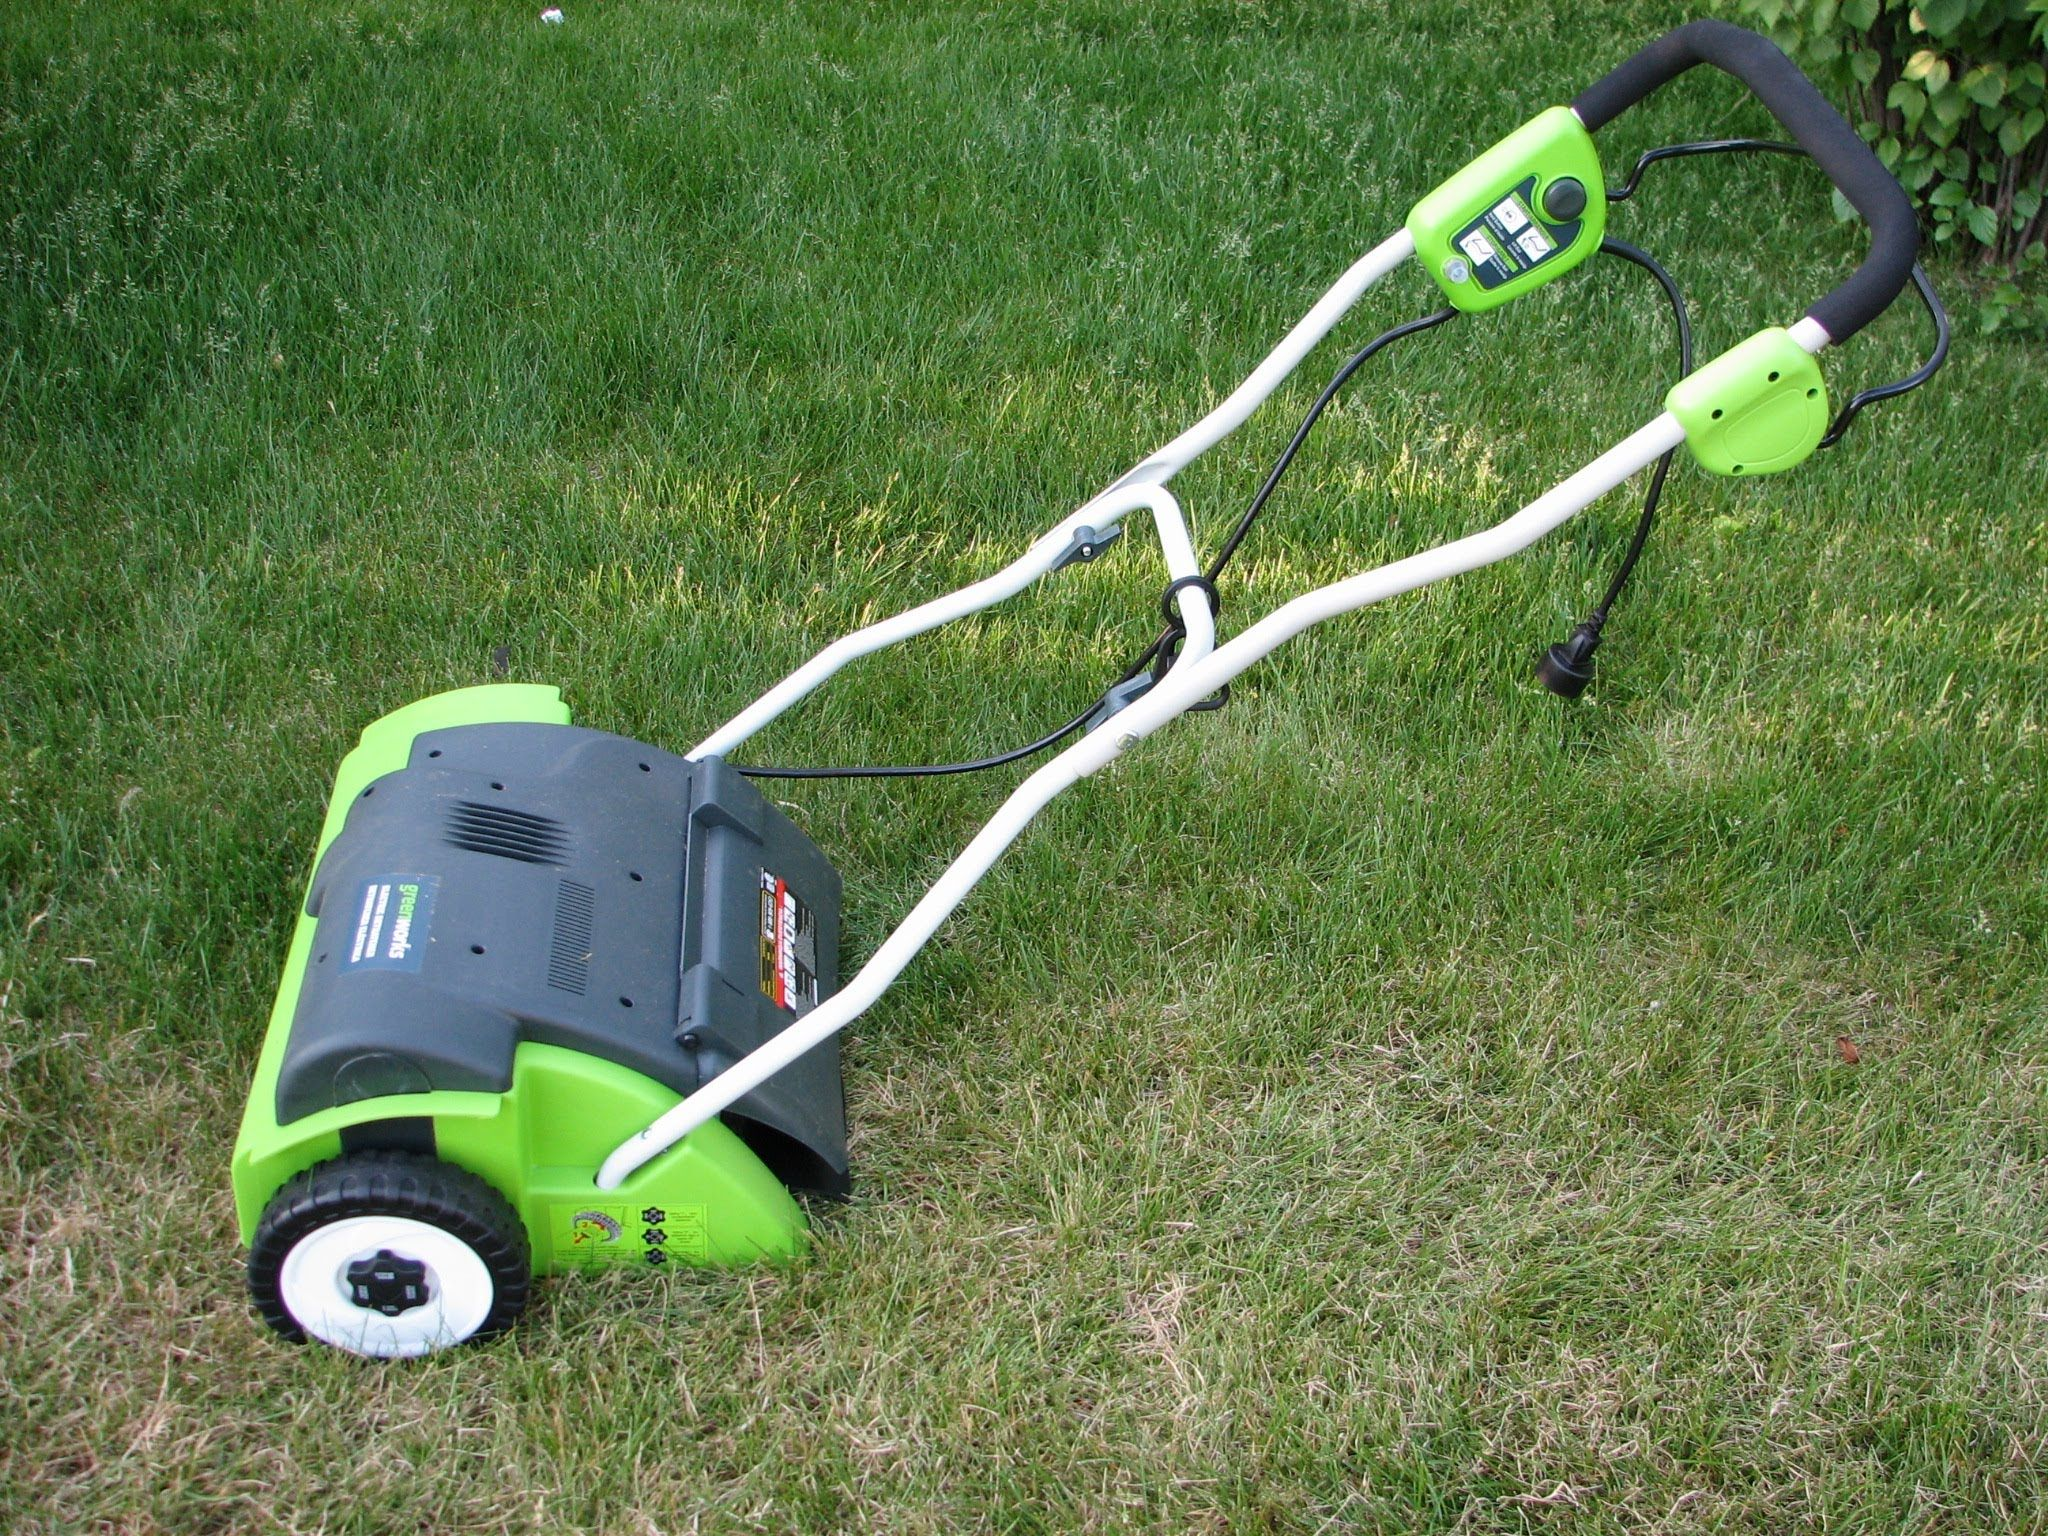 Greenworks electric lawn dethatcher review dethatching